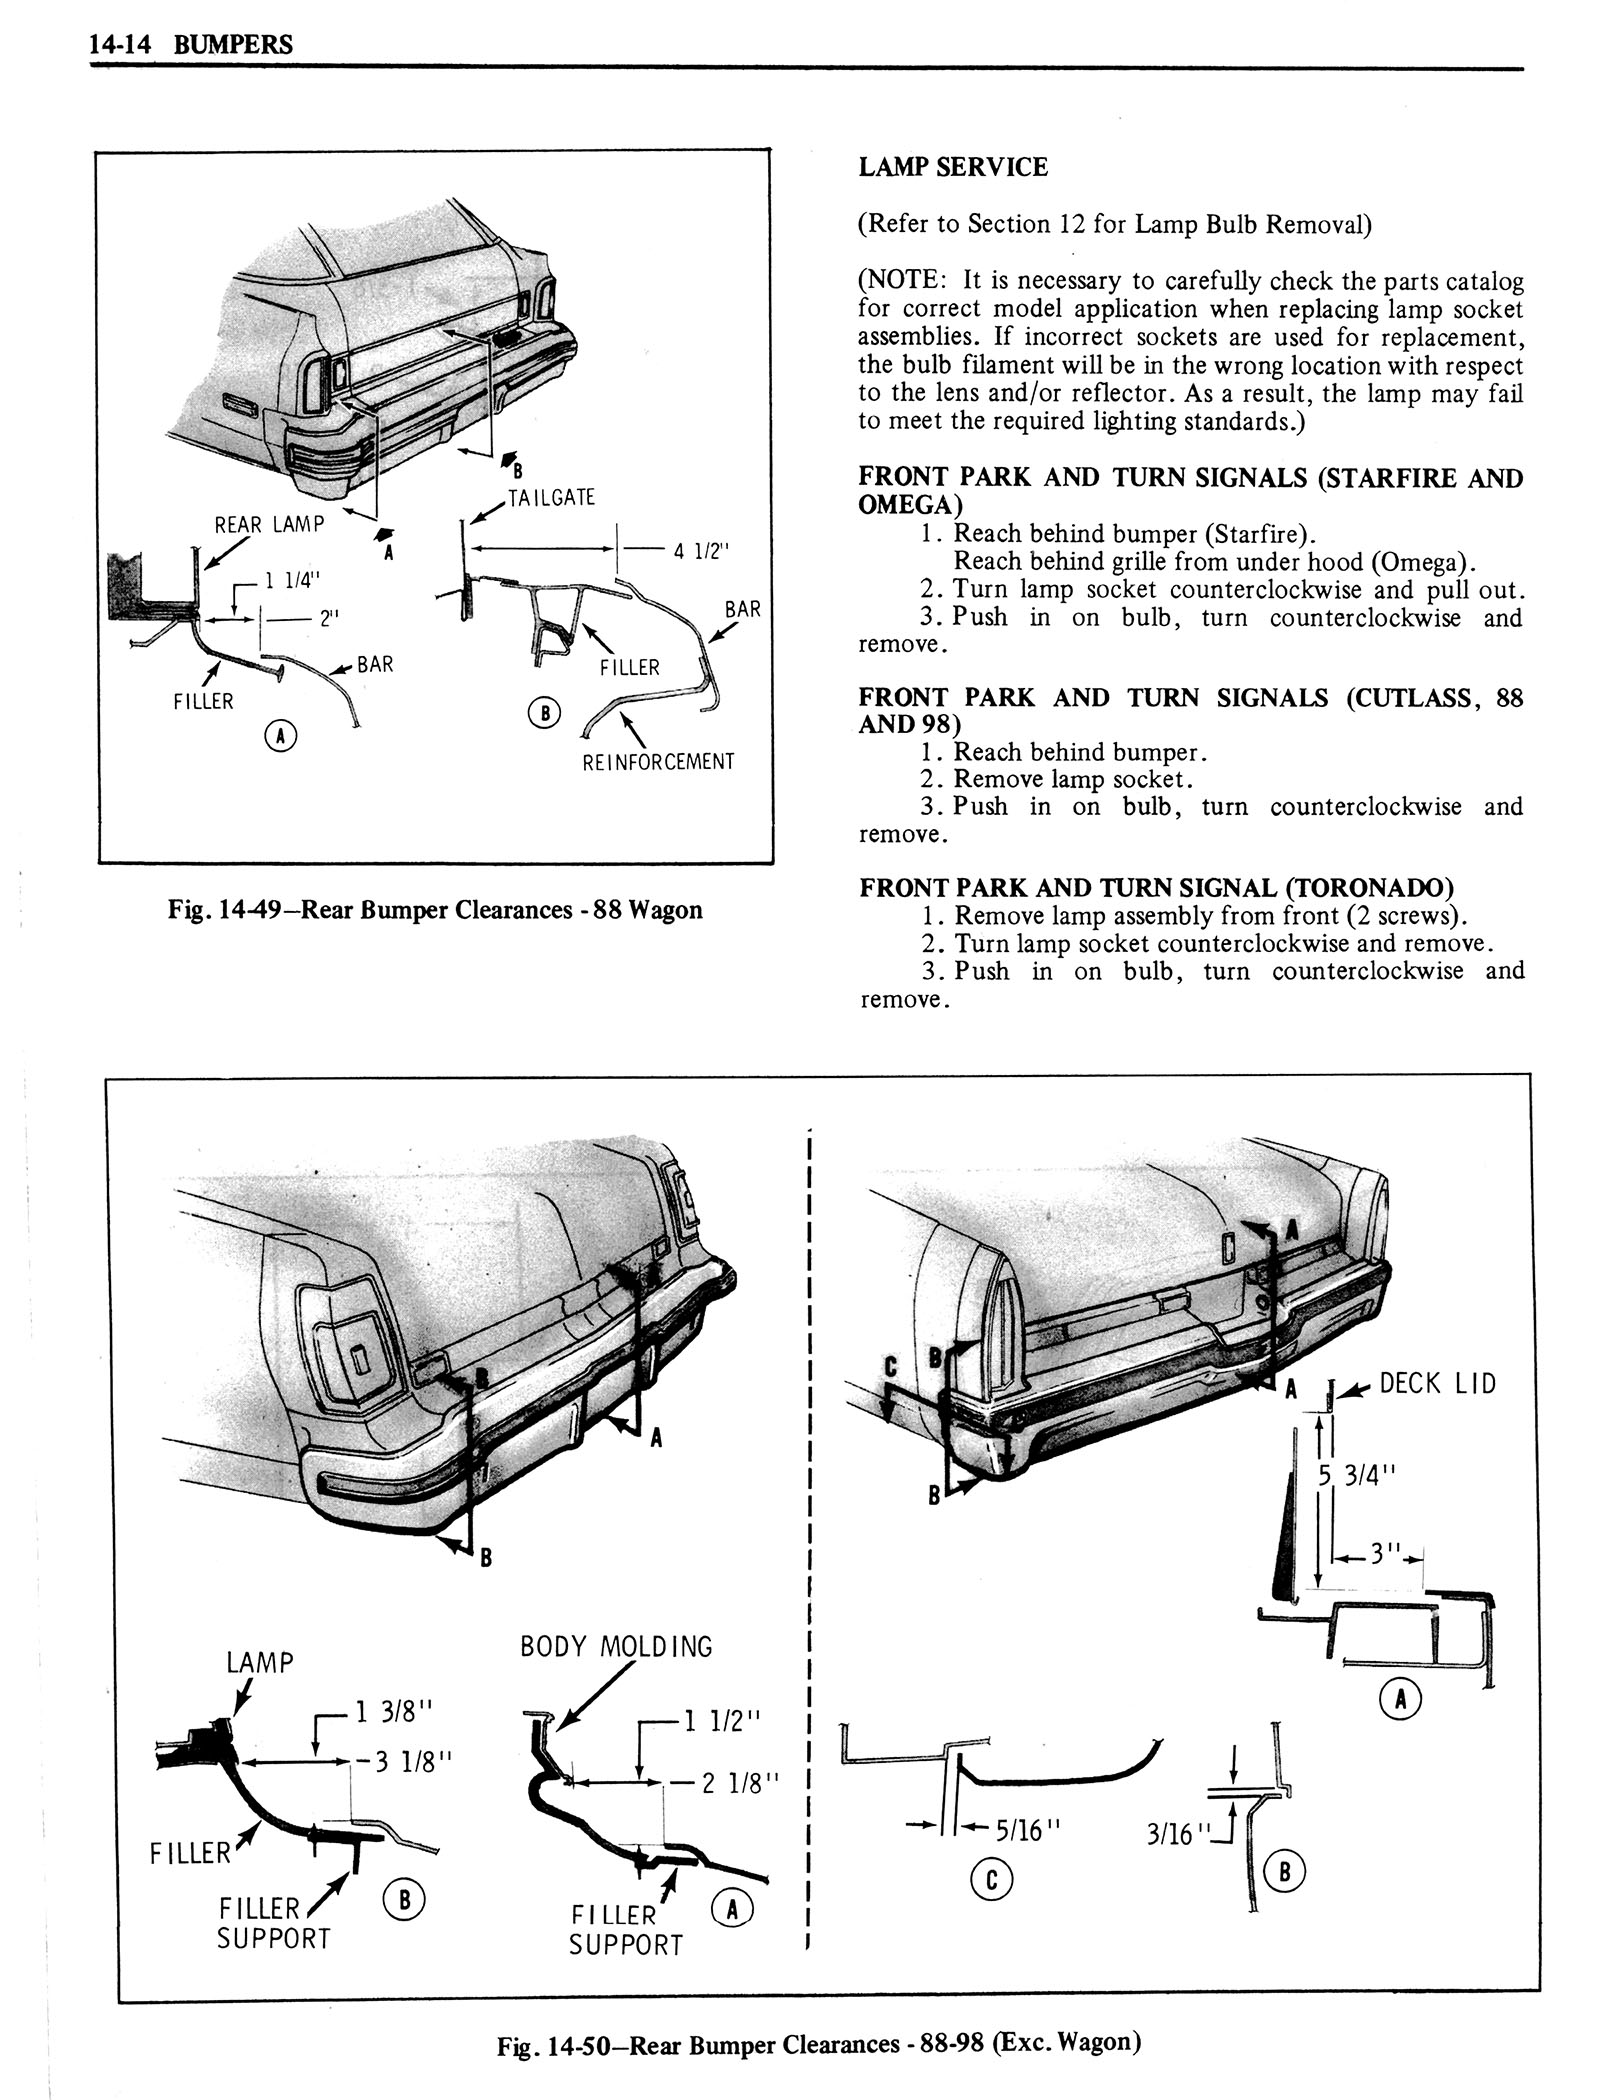 1976 Oldsmobile Service Manual page 1300 of 1390